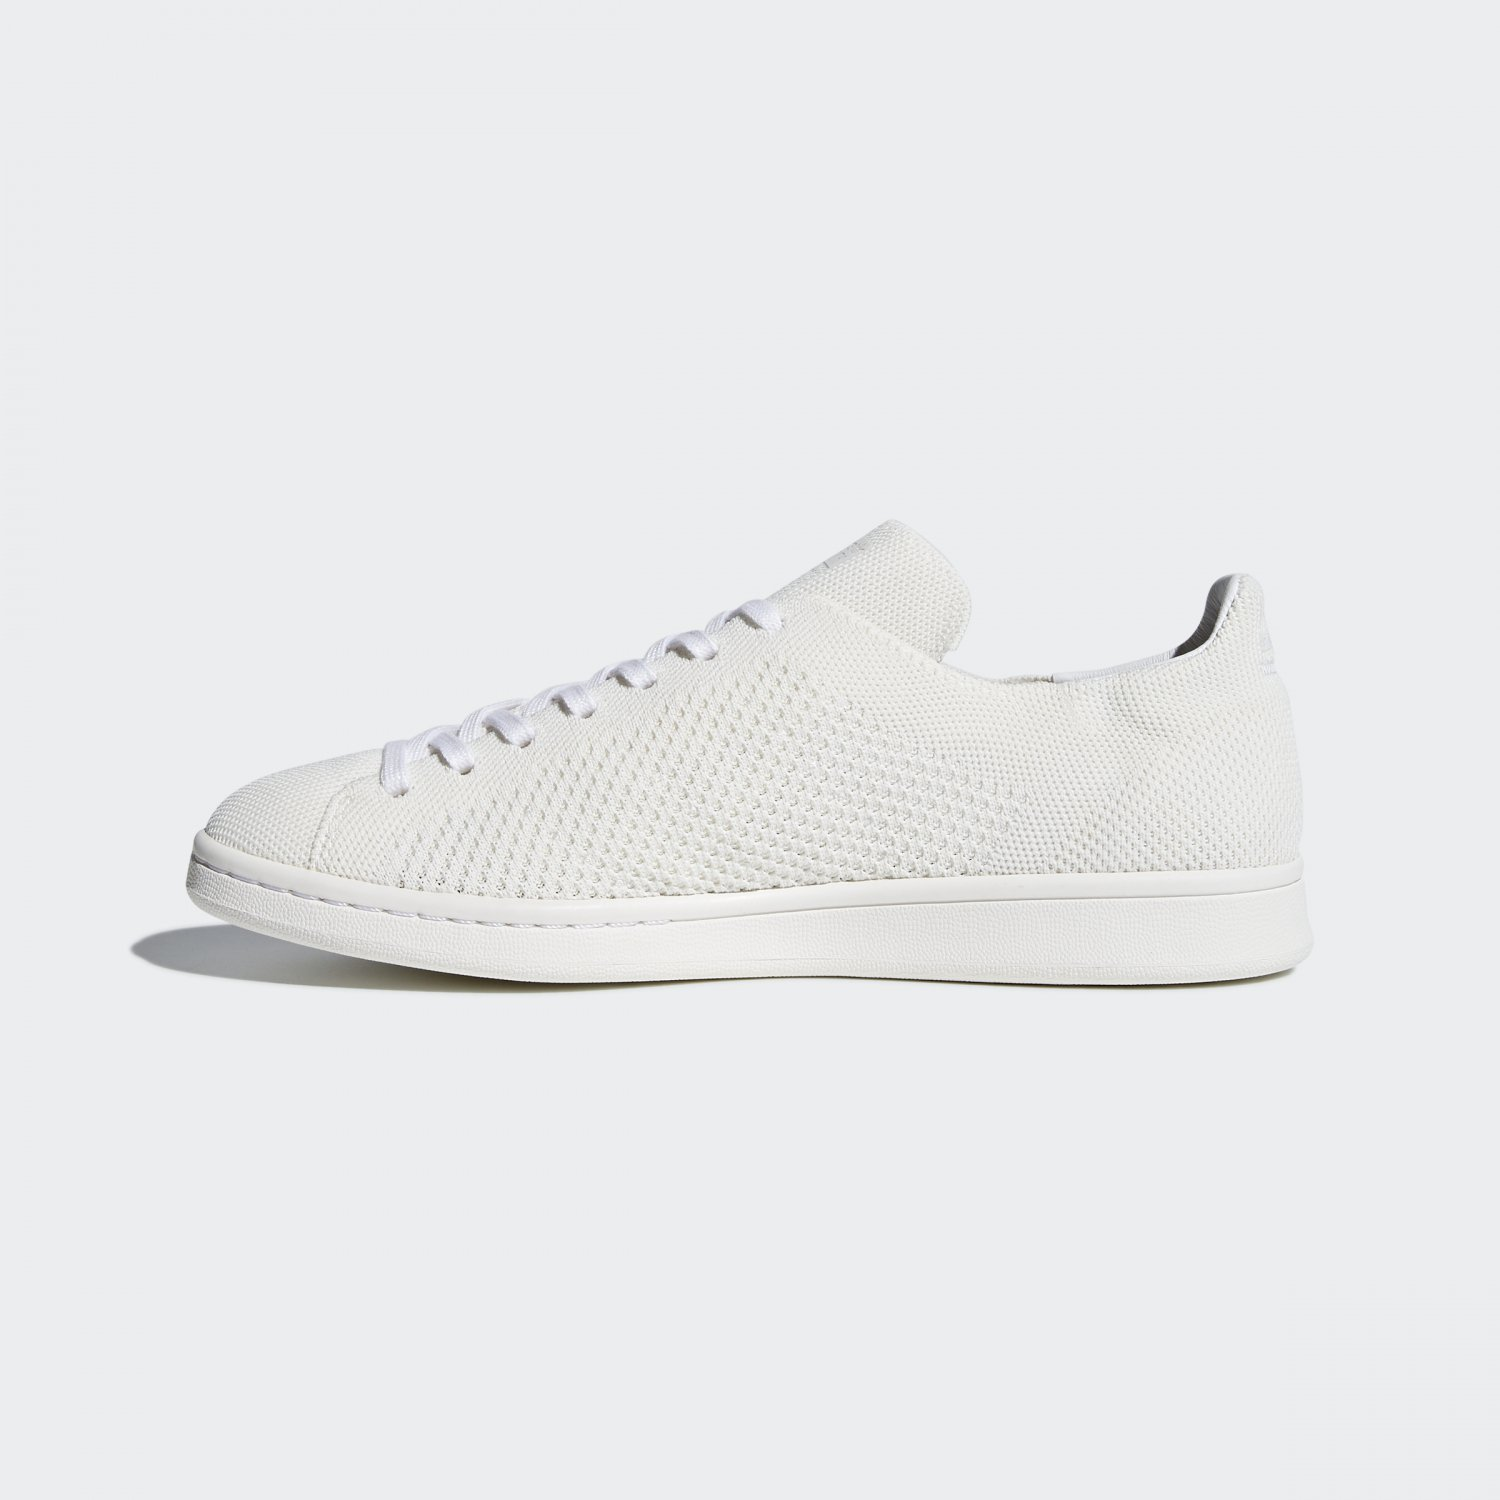 pharrell-williams-adidas-stan-smith-blank-canvas-da9611-release-20180223